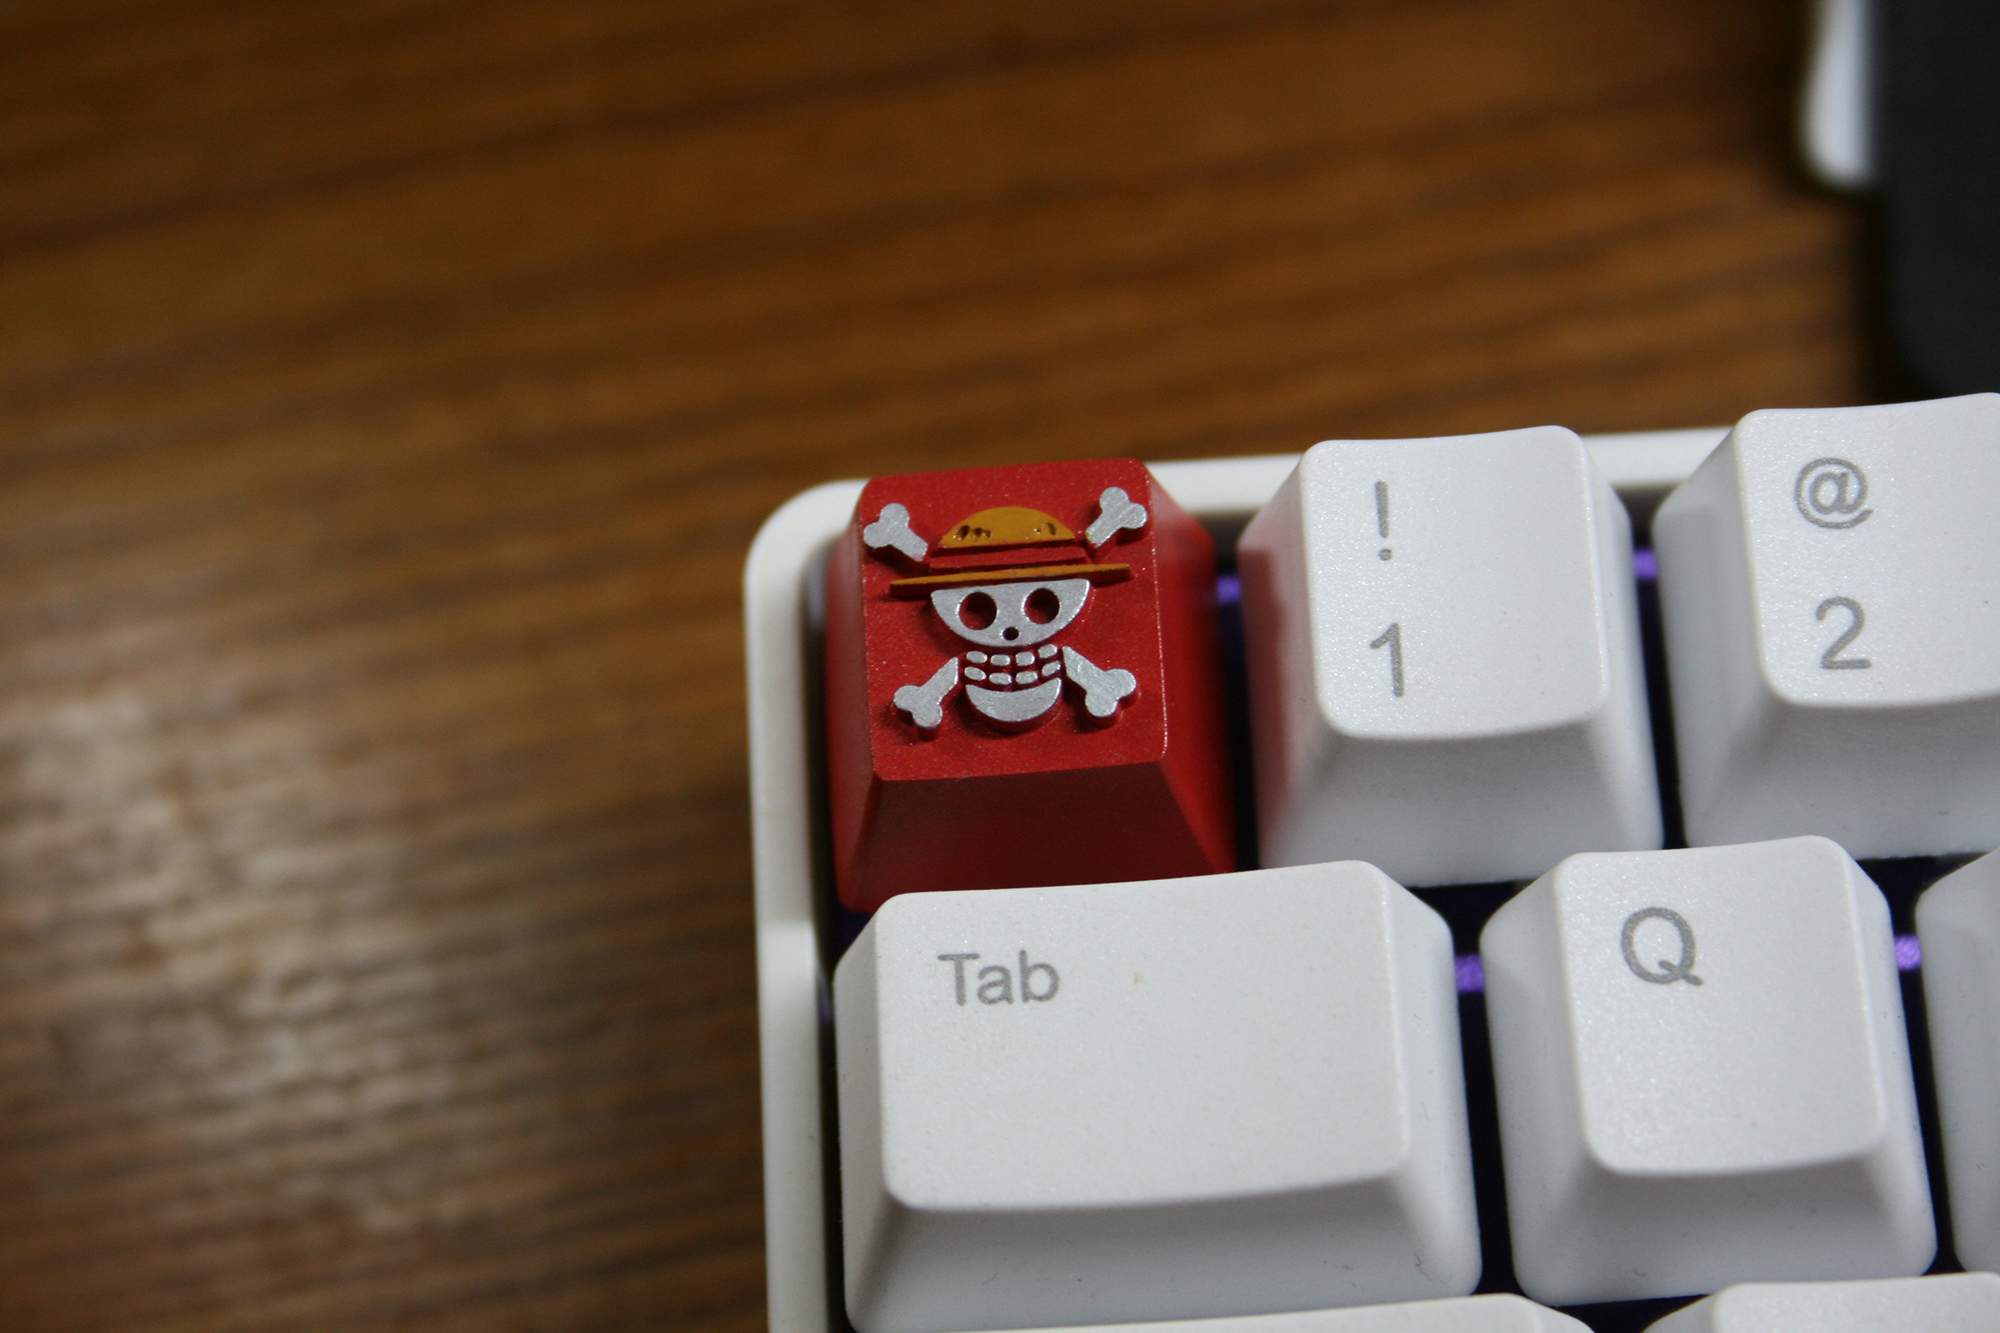 1pc Customized 3D Stereoscopic Resin Mechanical Keyboard Key Cap For ONE PIECE Luffy Resin Keycap